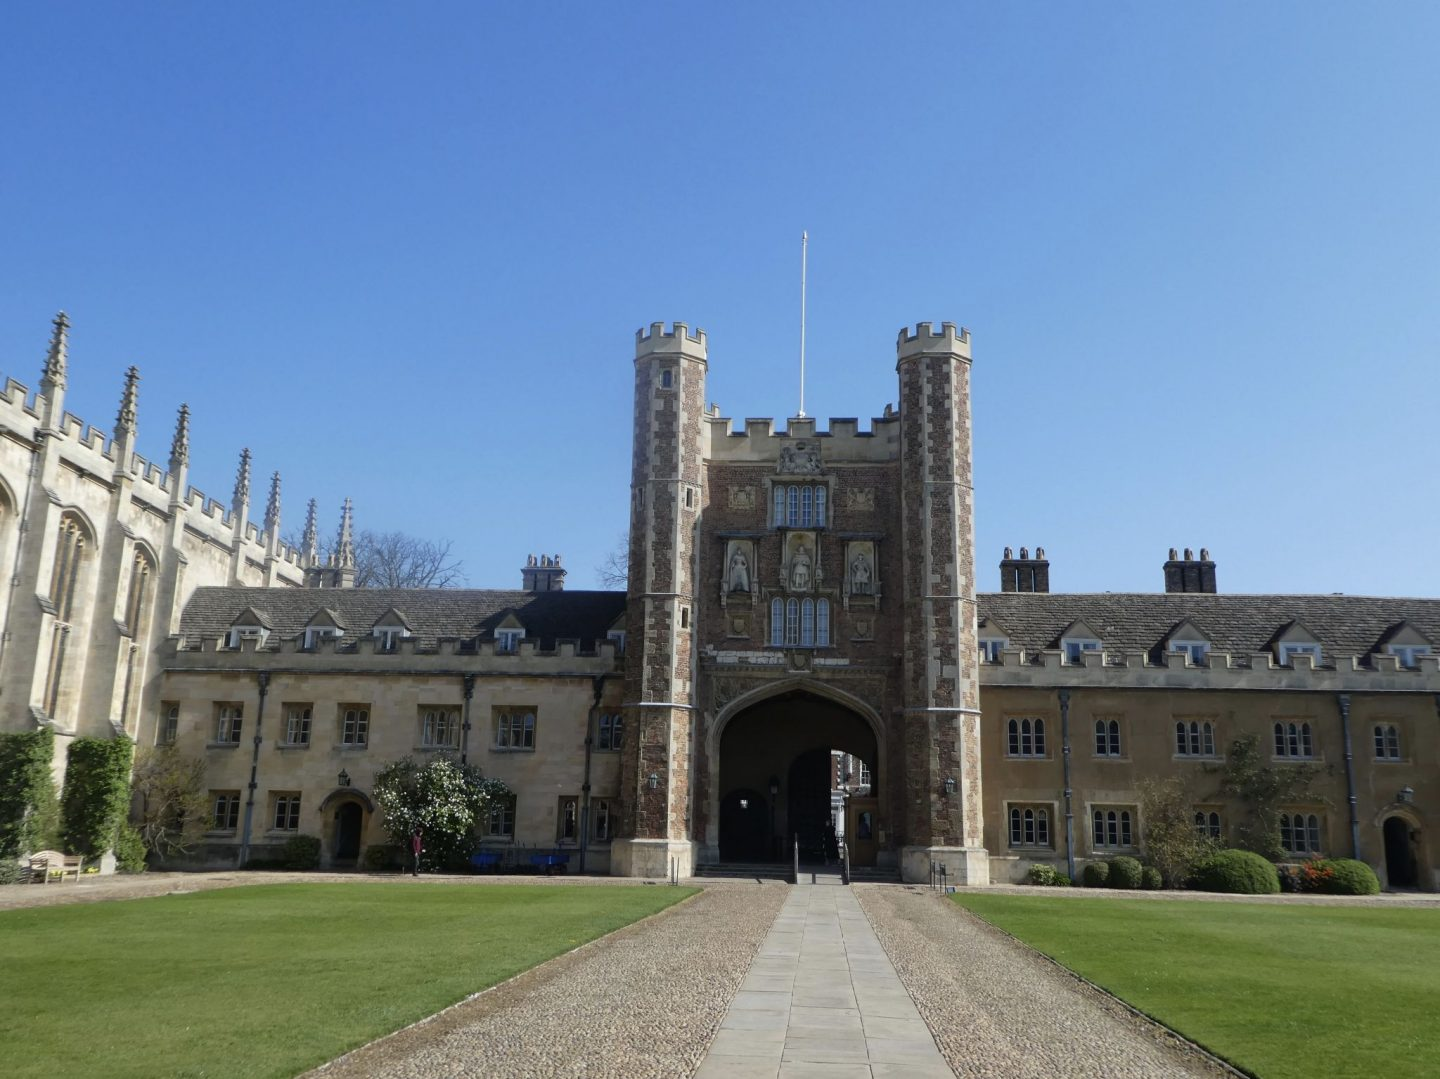 Cambridge (30 March to 2 April 2019)